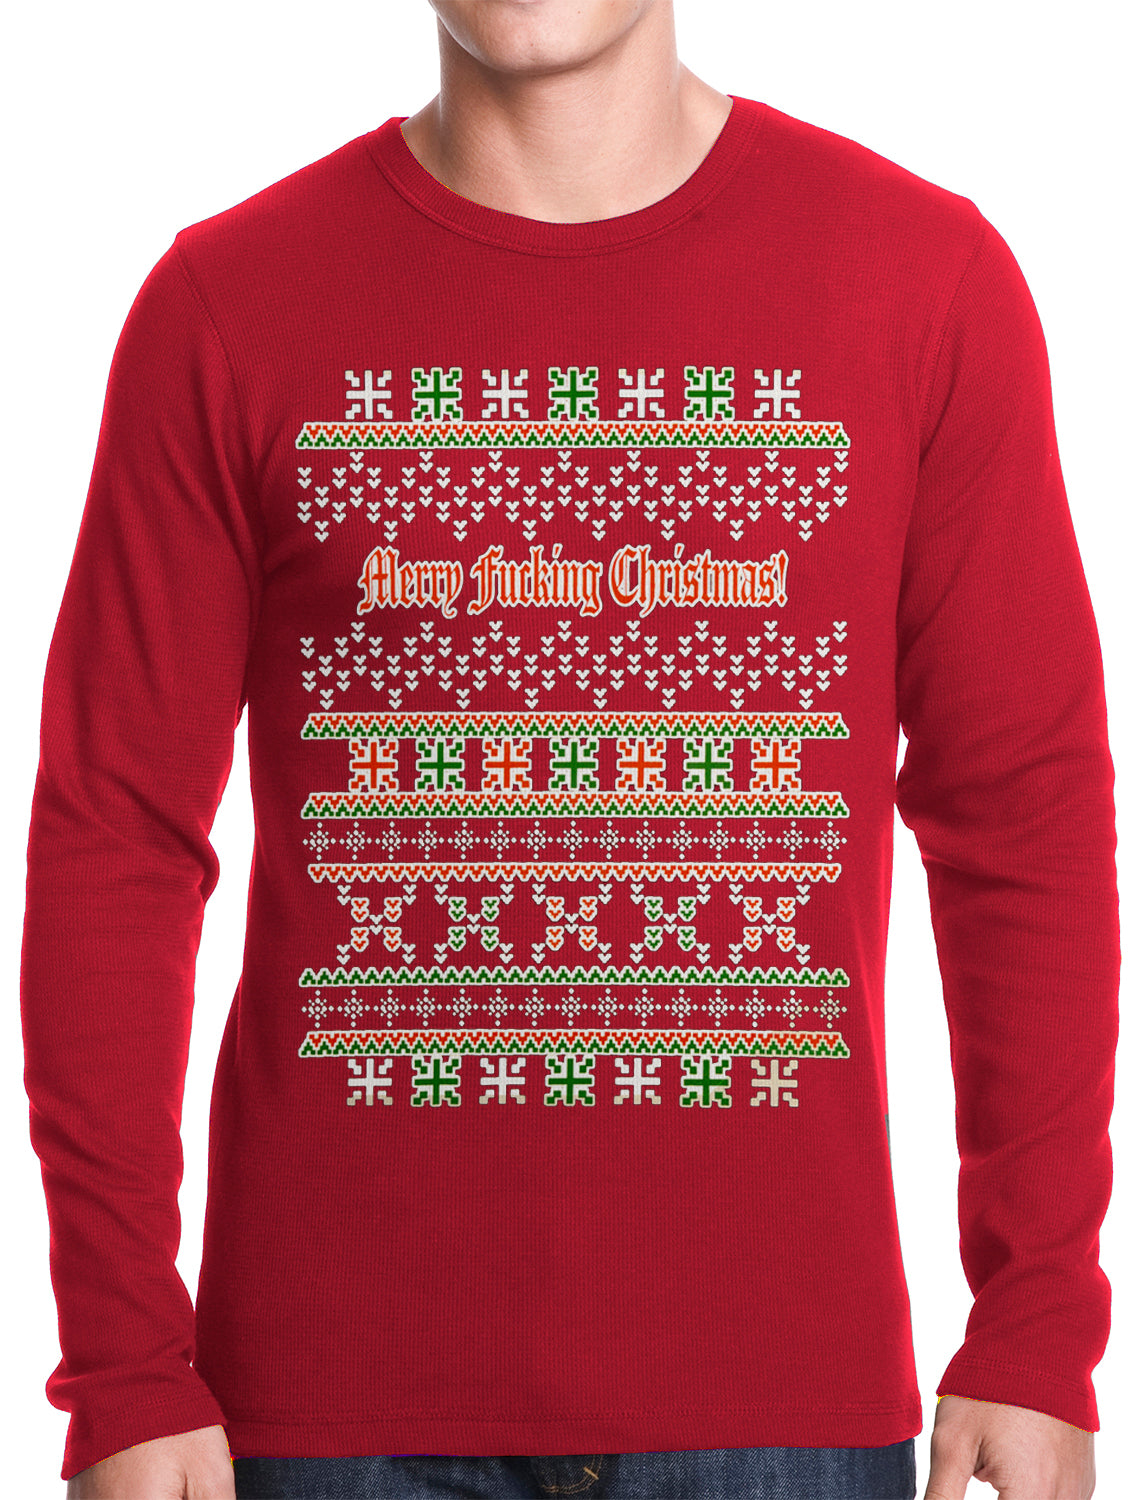 7c4f8fea283 Ugly Christmas Thermal - Merry F cking Christmas Thermal Shirt – Bewild